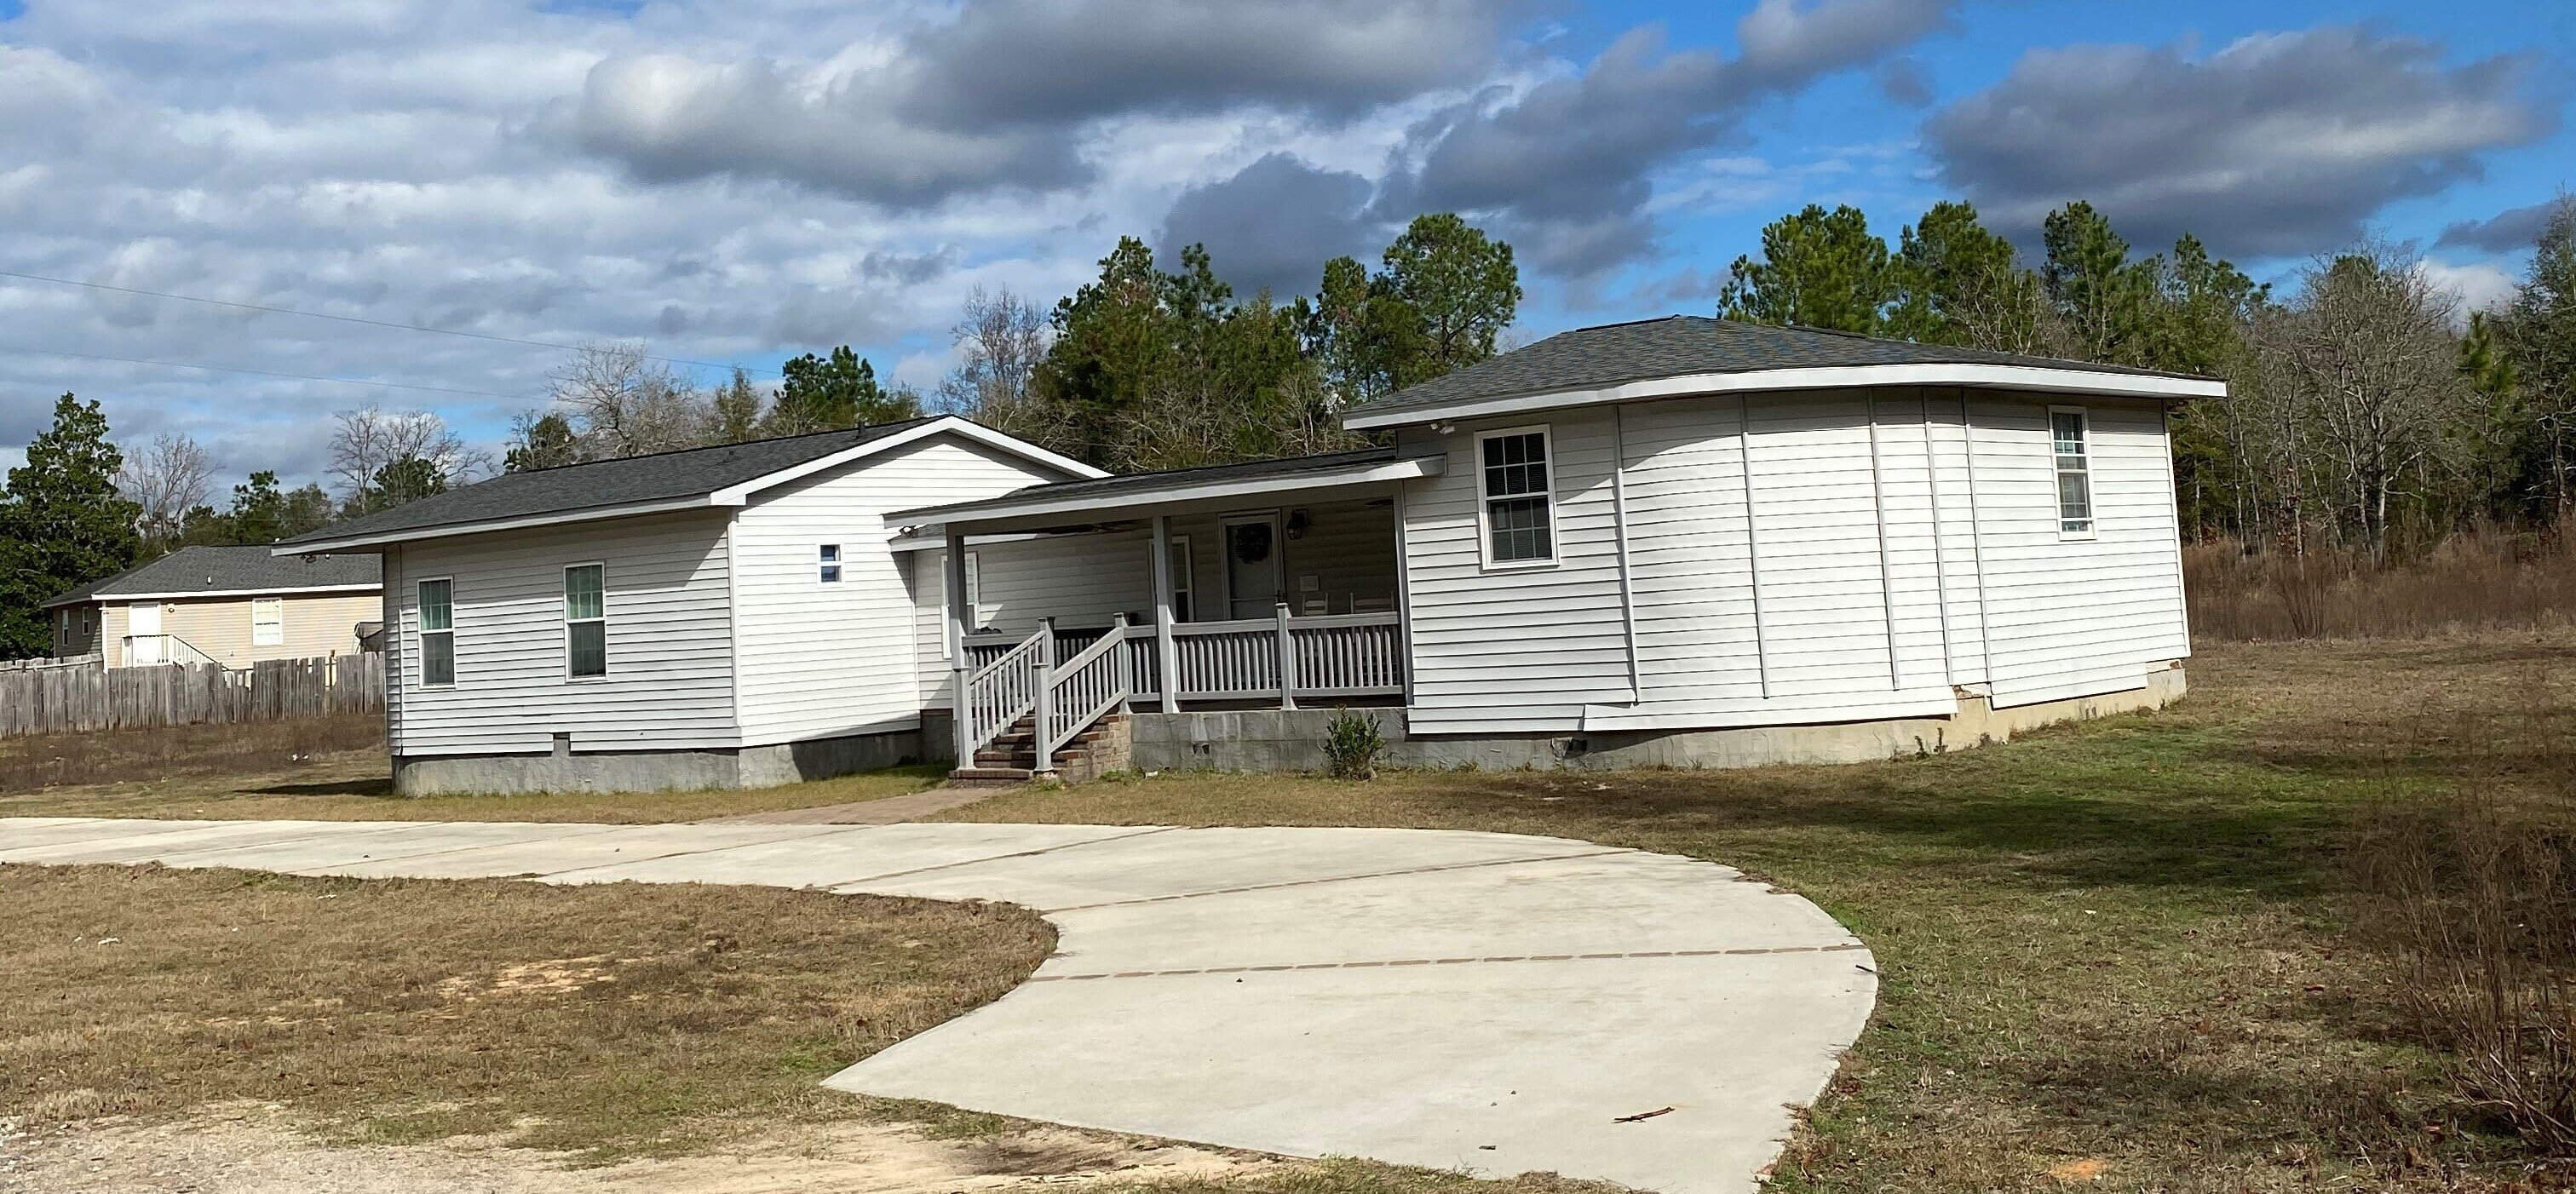 This home is ready for immediate move in It is 3BR2BA with granite counter tops and other updated